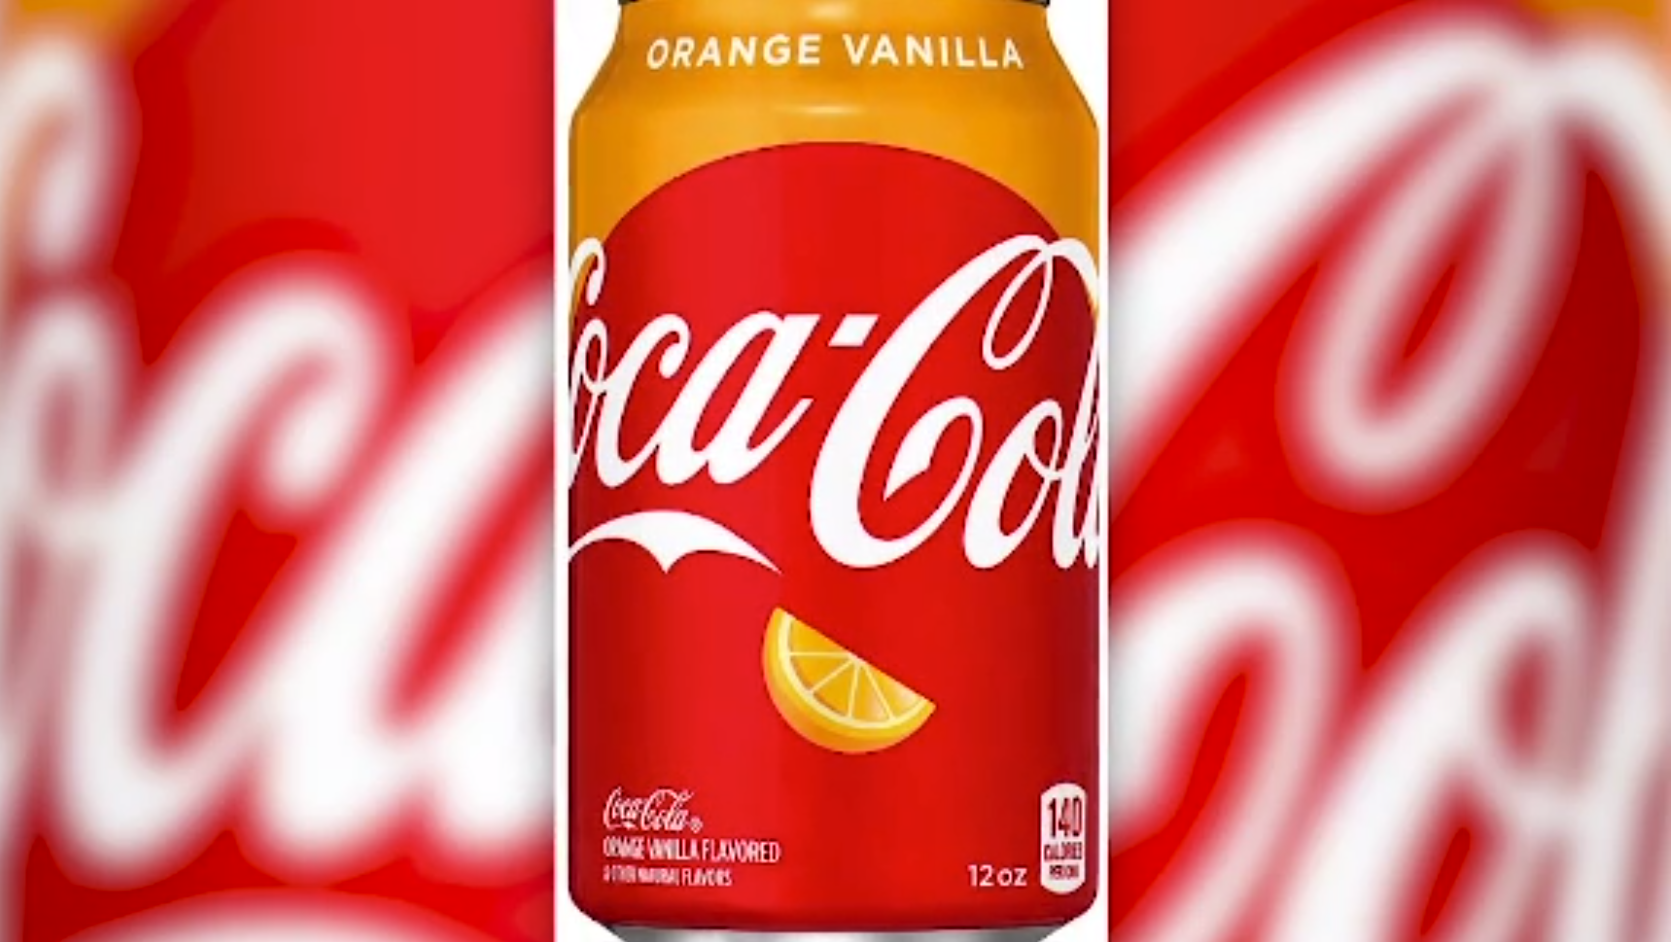 Orange vanilla coca cola-846652698.PNG